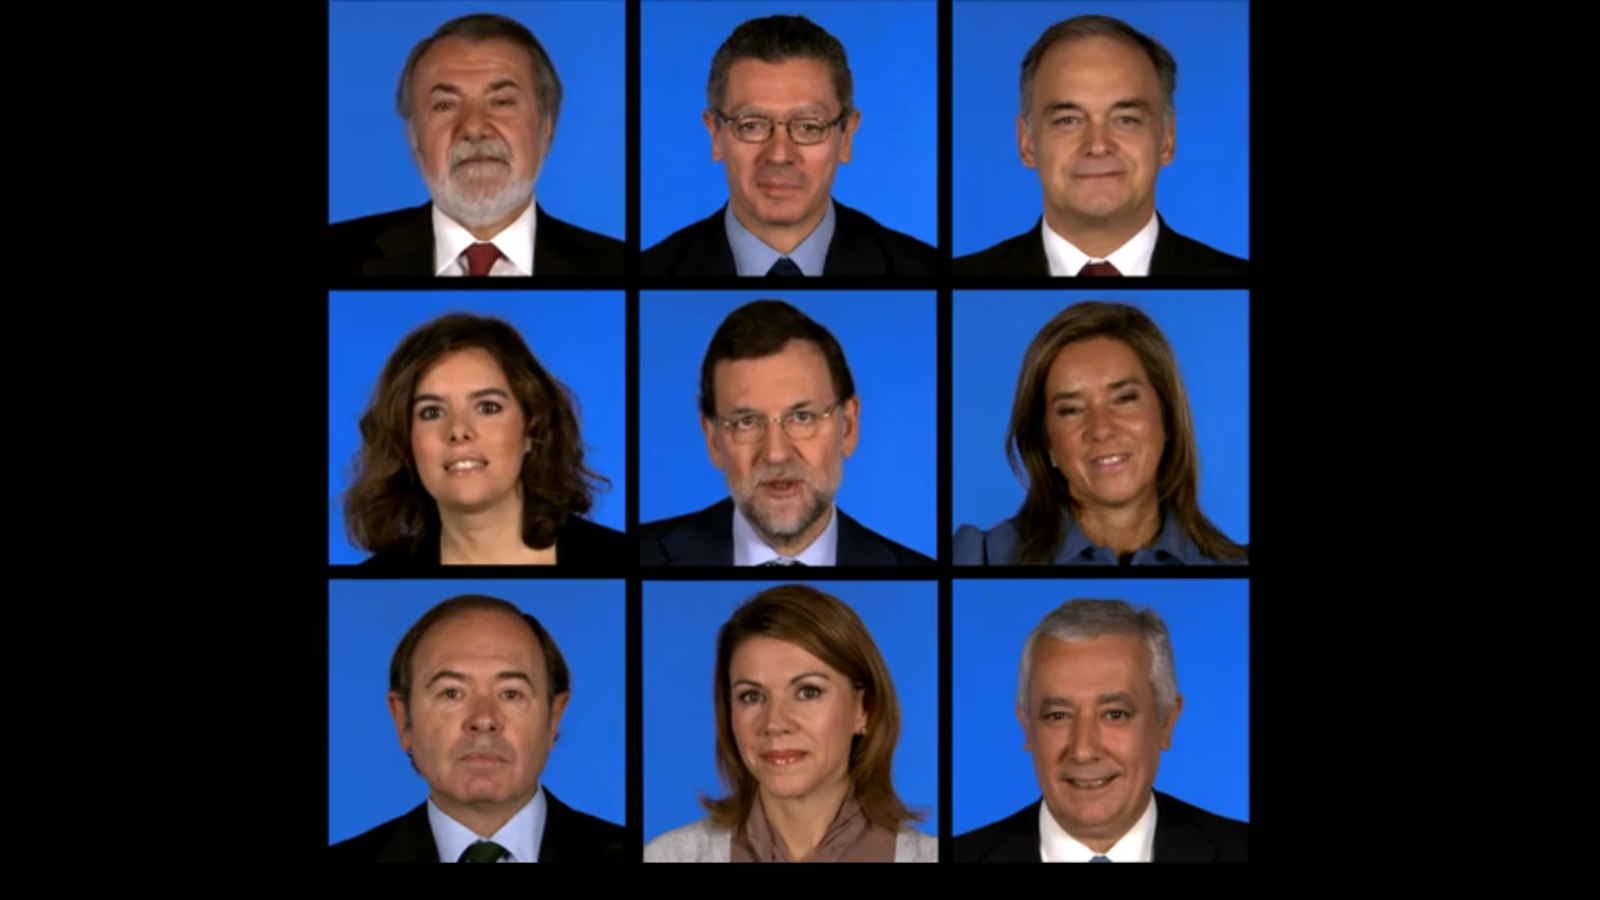 Vídeo de Nadal del PP inspirat en 'The Brady Bunch'